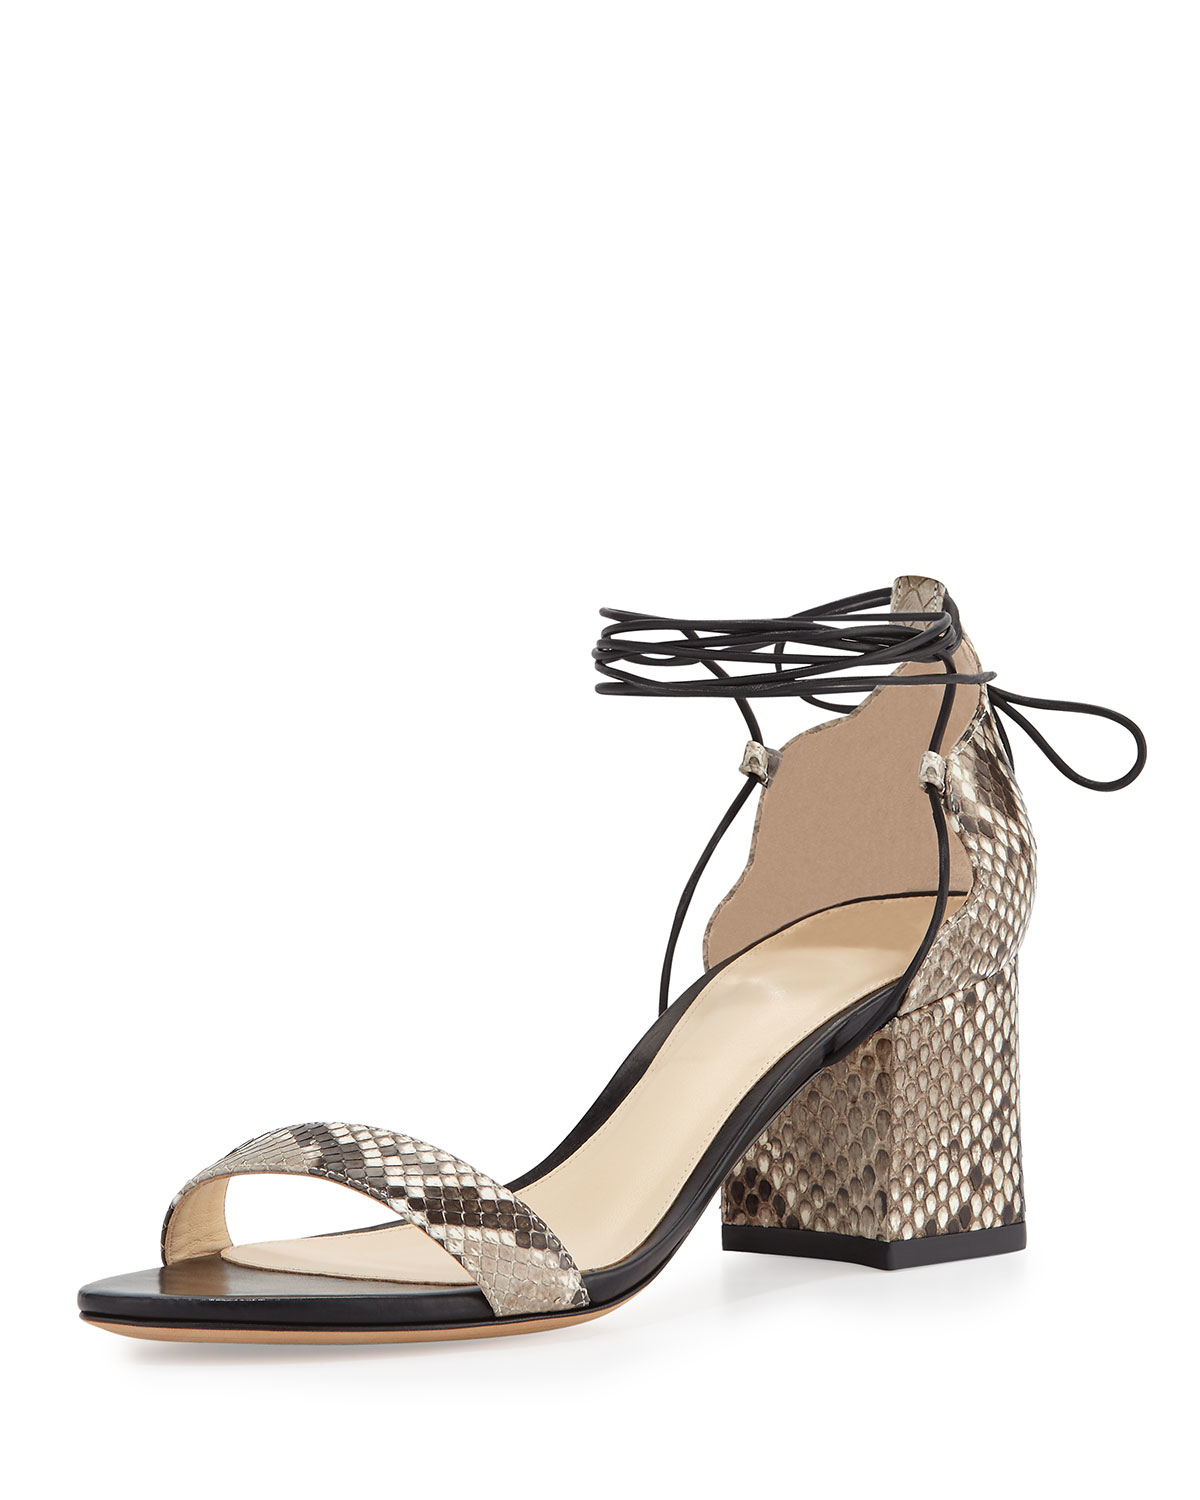 Alexandre Birman Snakeskin Wrap-Around Sandals clearance discount cheap in China shop online cheap newest for sale very cheap M9qr8Awm